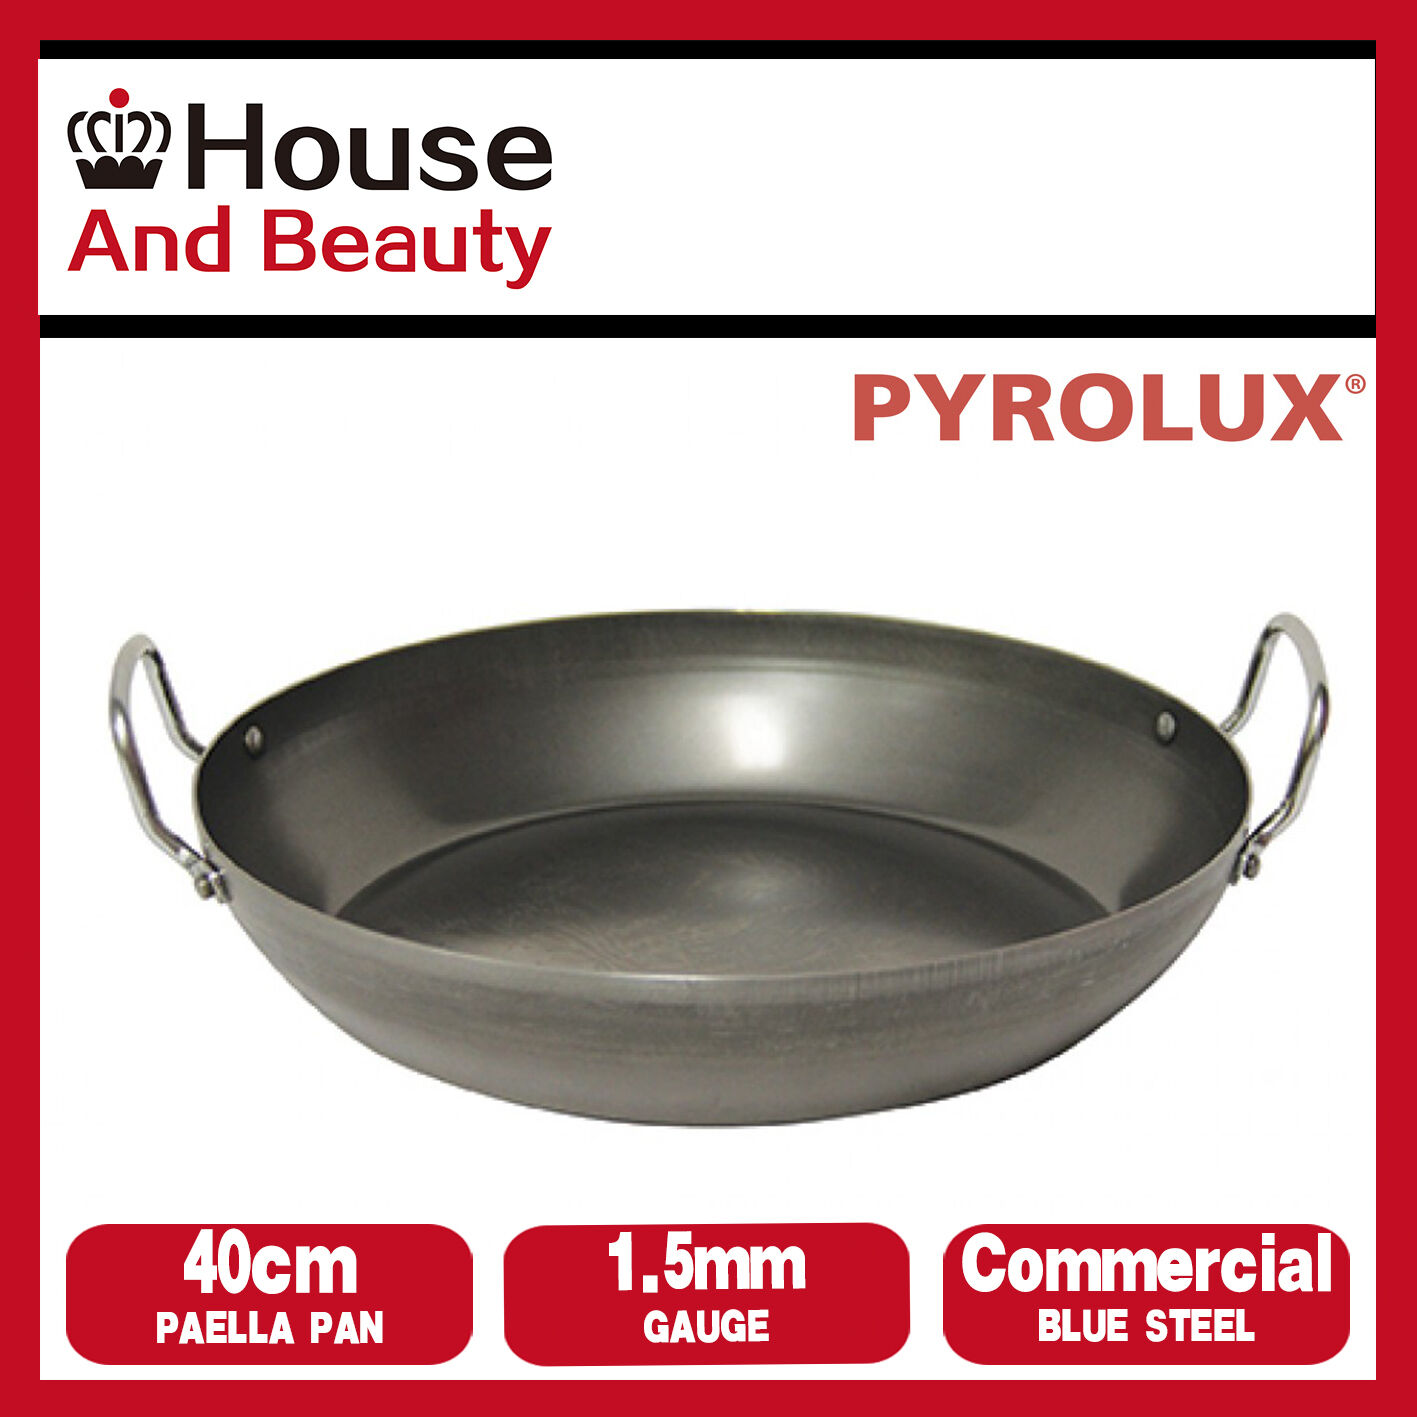 NEW Pyrolux Industry bluee Steel 1.5mm Gauge Commercial Quality 40cm Paella Pan